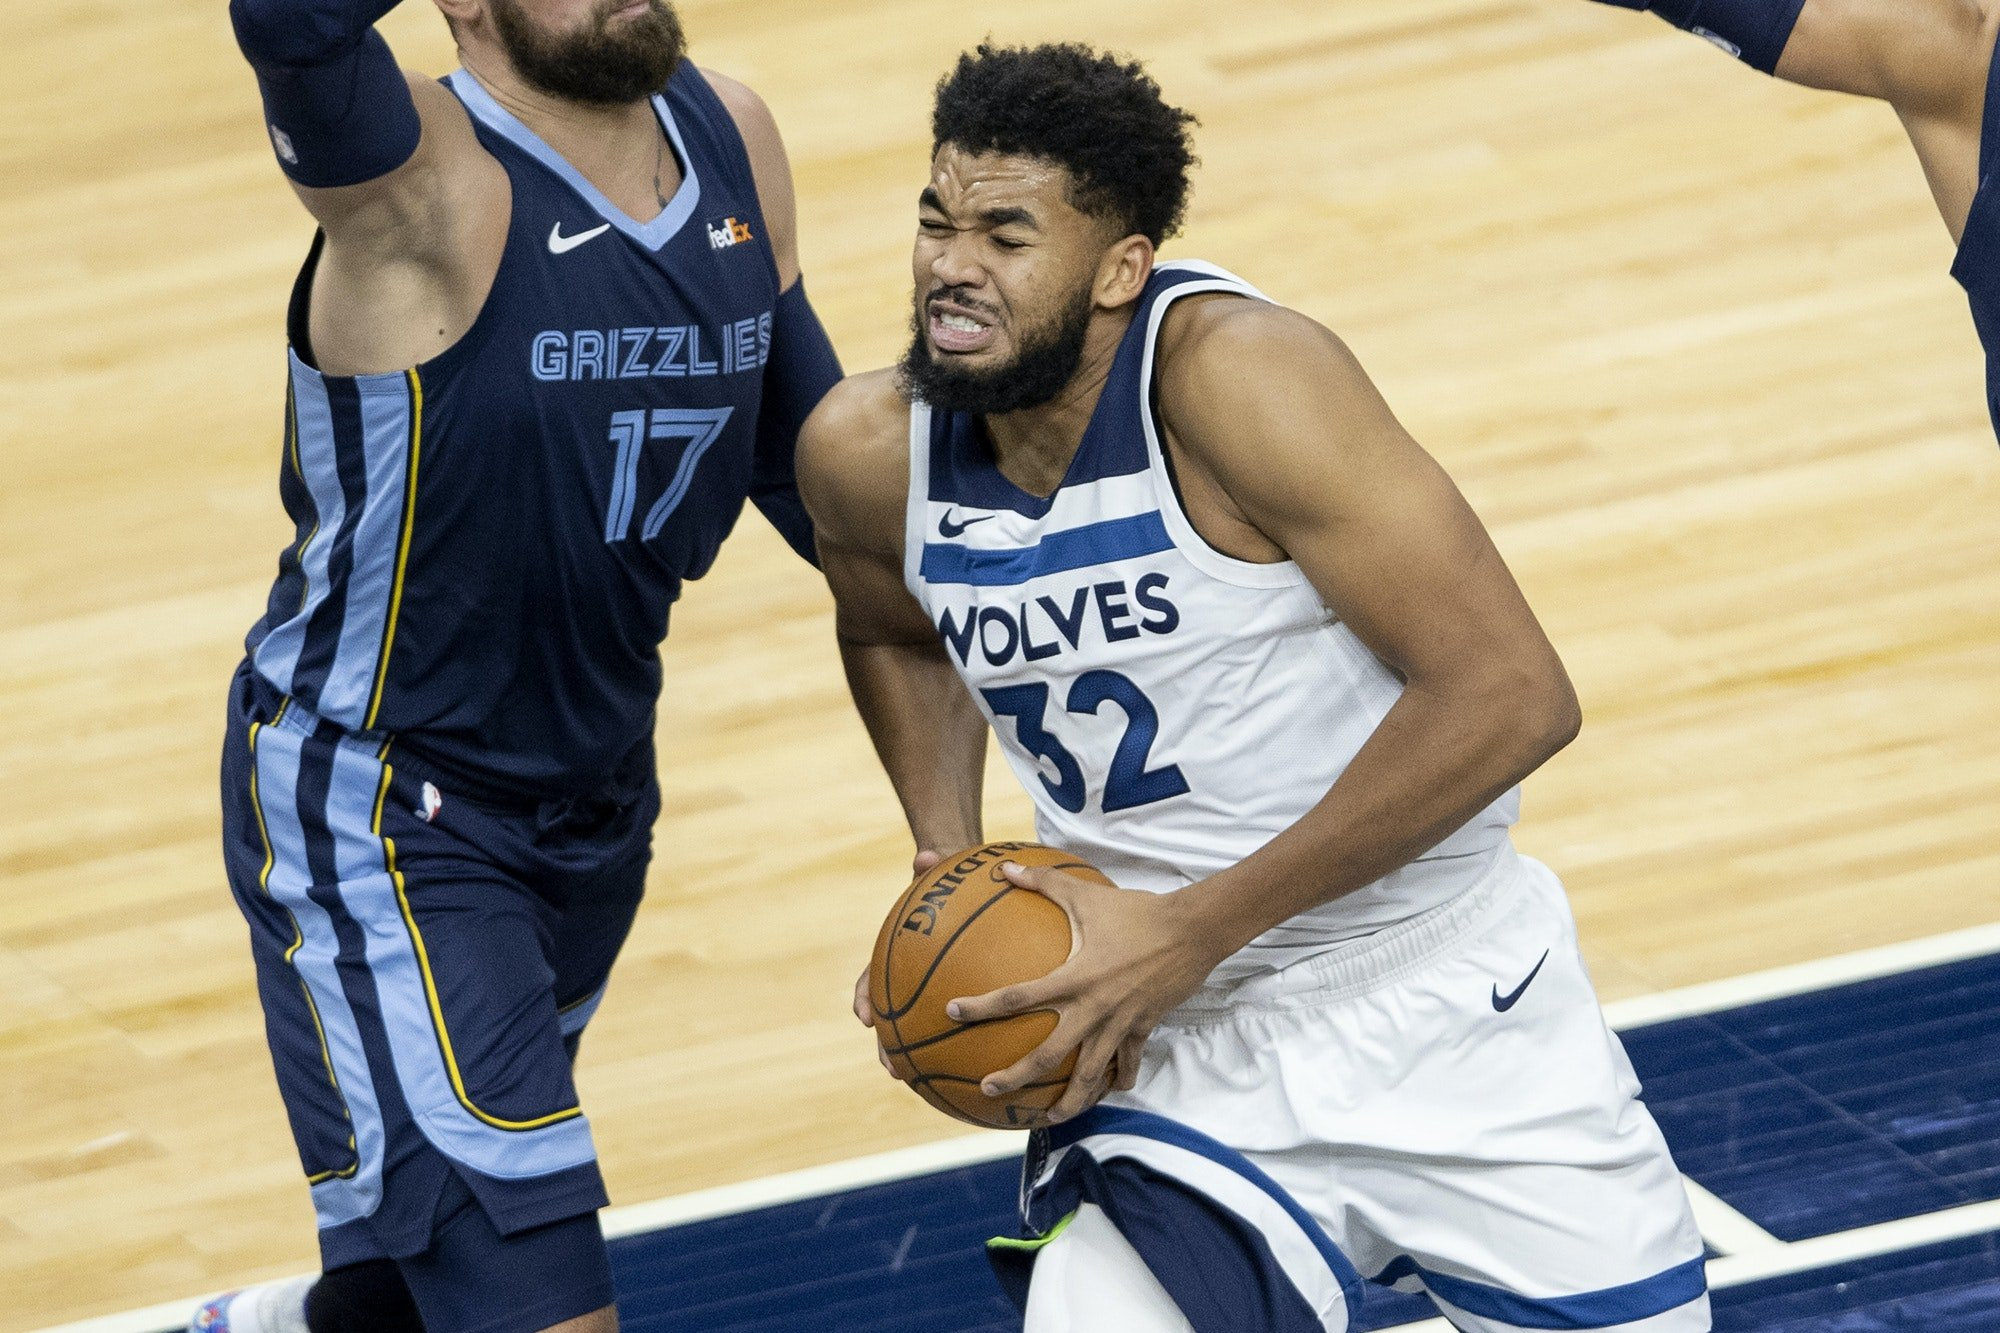 Karl Anthony Towns Heartbreakingly Confesses His 'Soul Has Been Killed Off' After Losing So Many Family Members To Covid-19